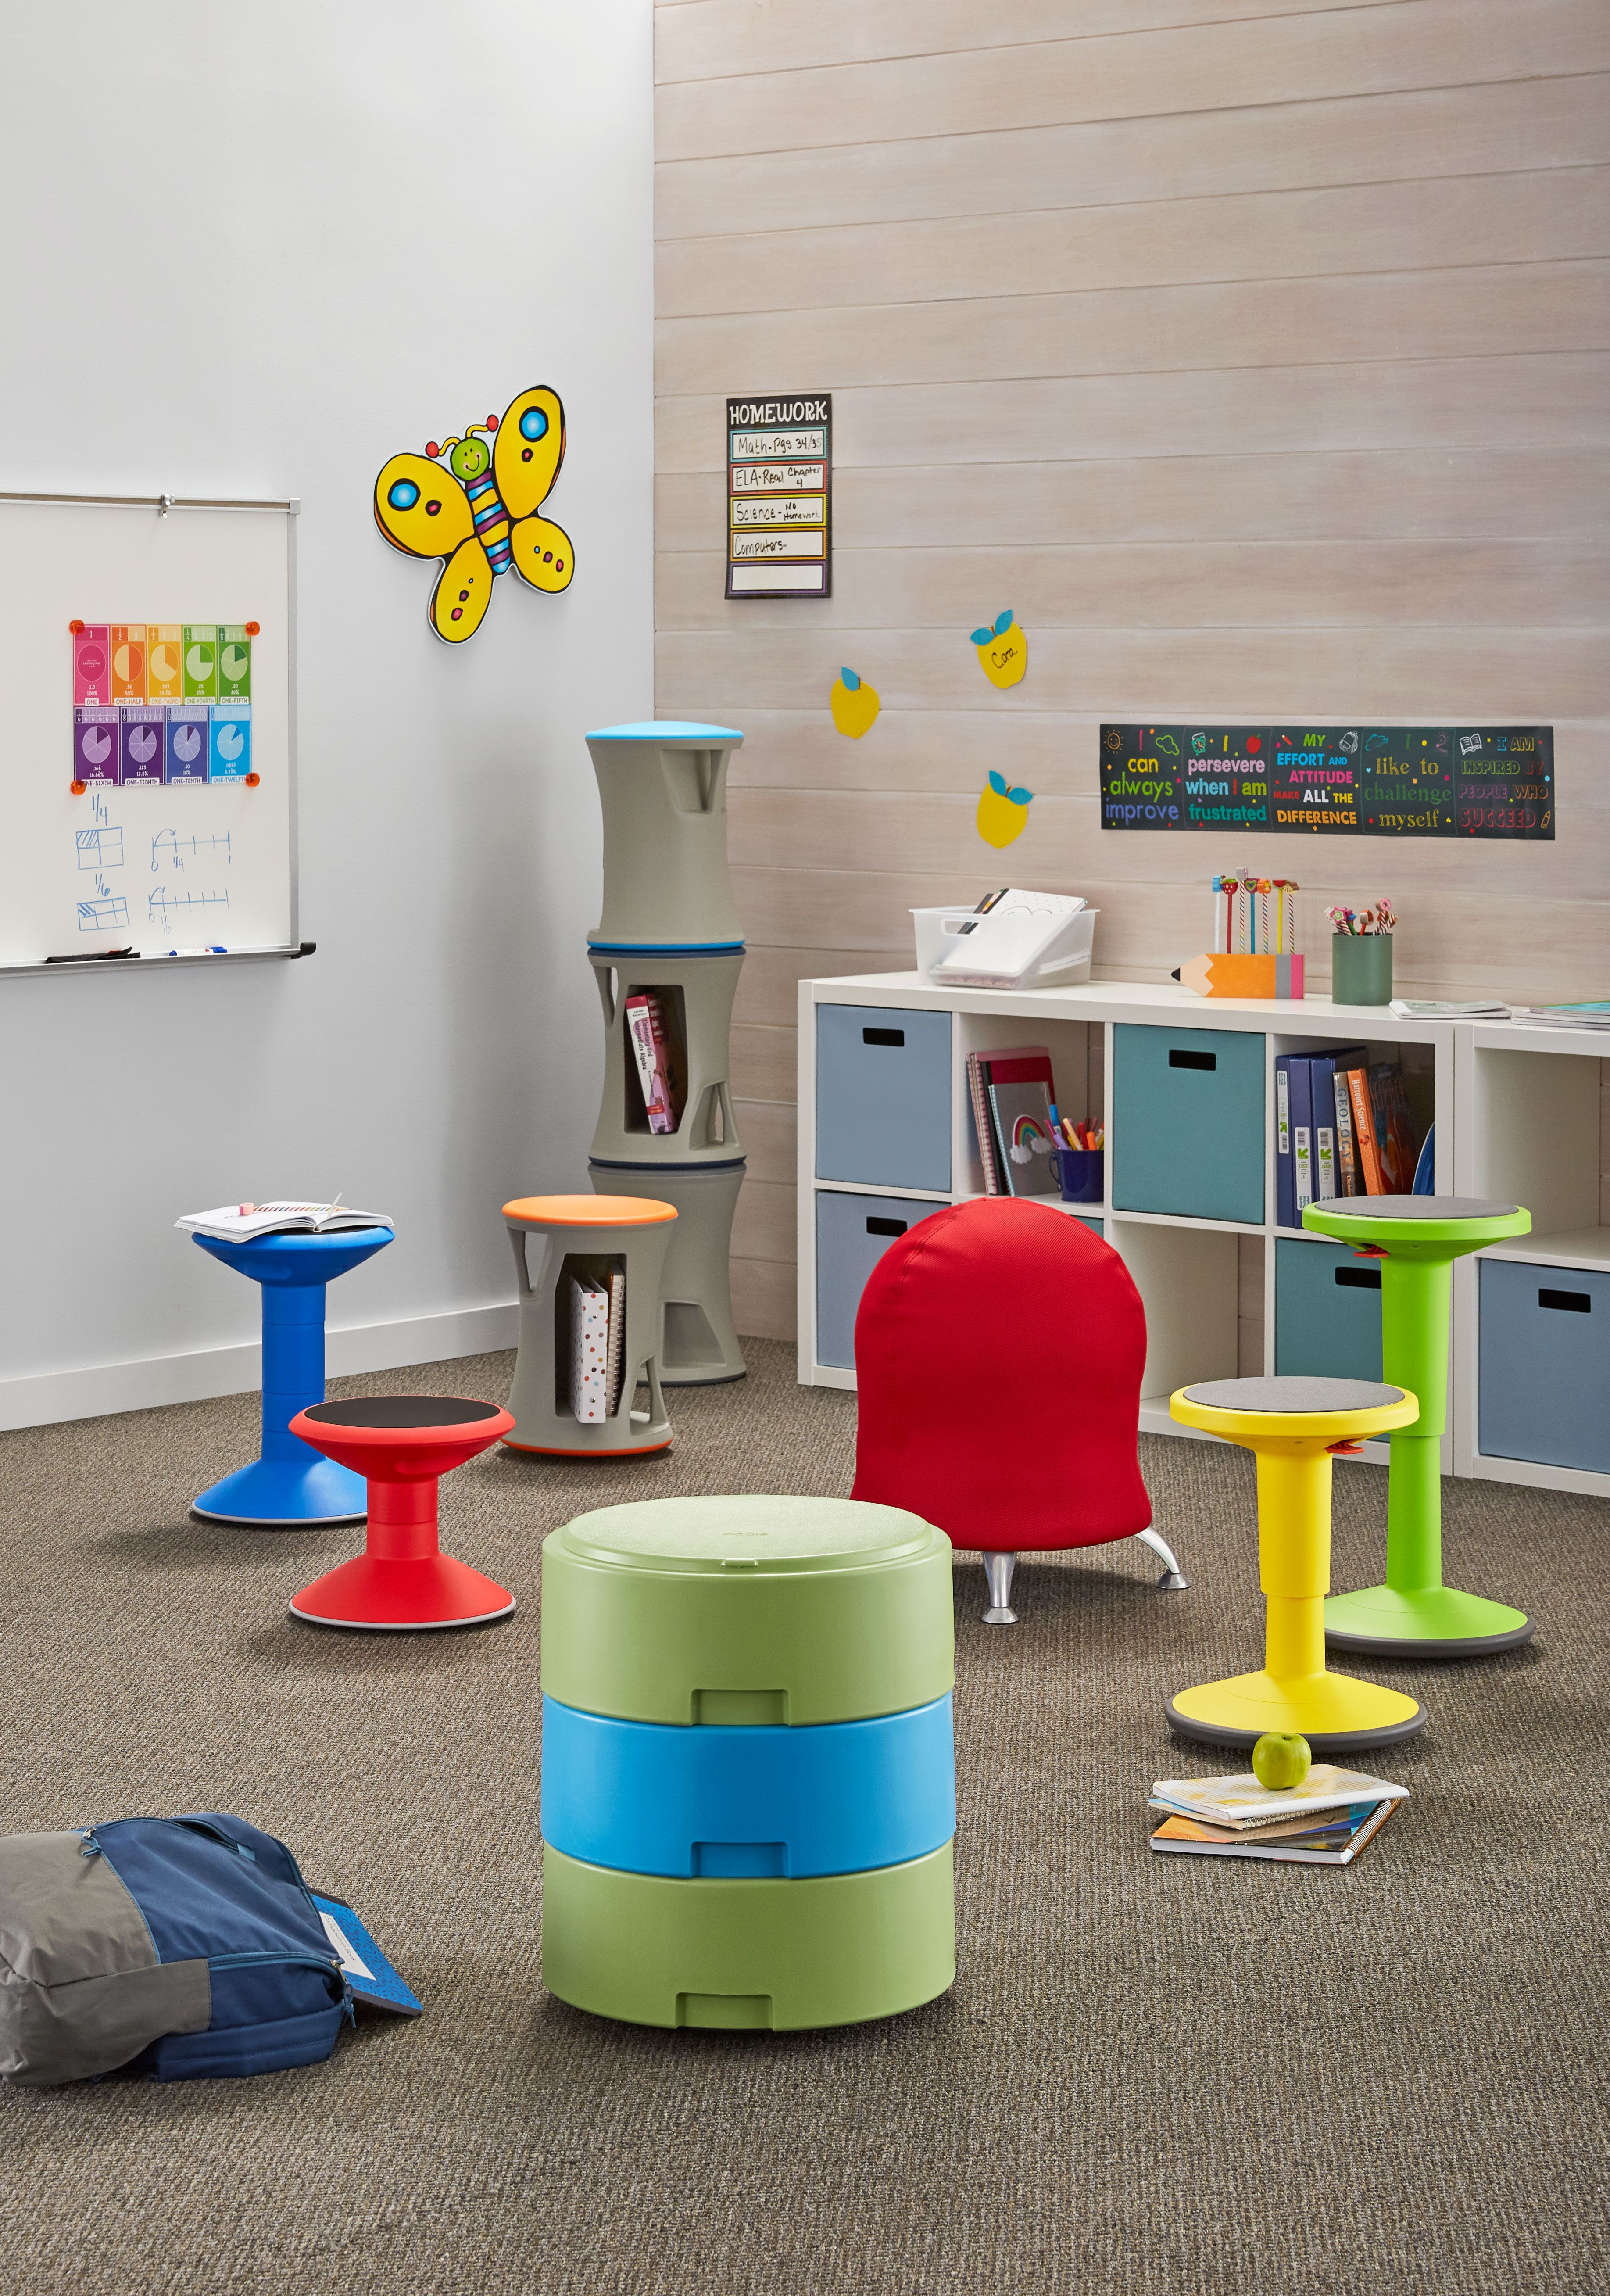 Flexible Seating Inspiration For The Classroom Motion Stools